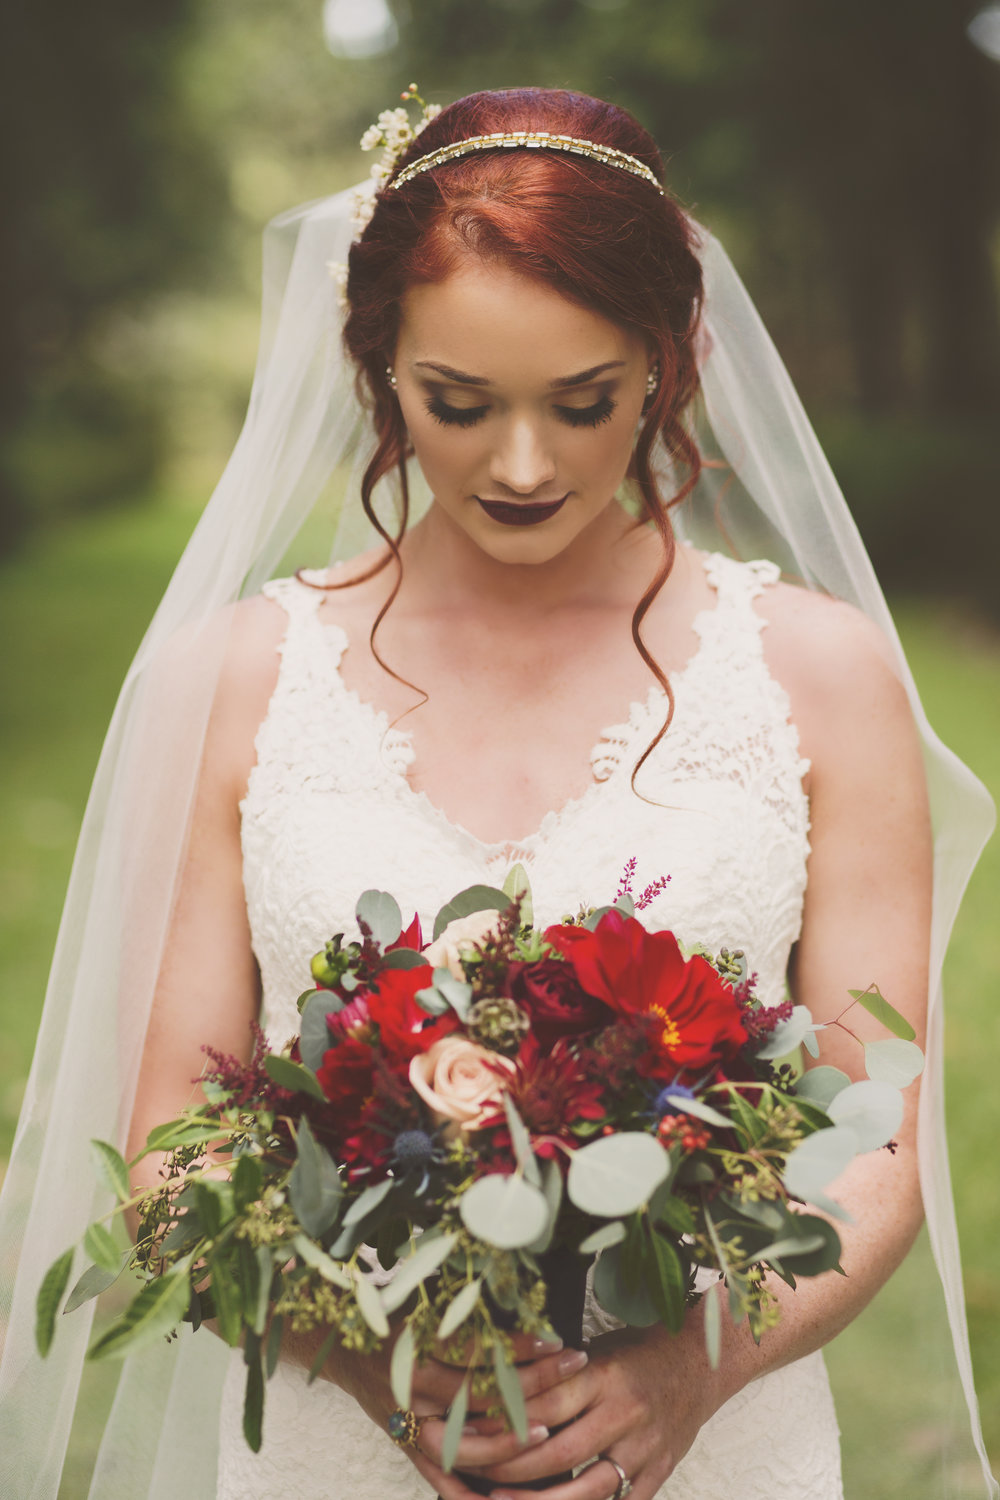 ivory-and-beau-bridal-boutique-courtney-hyatt-photography-hart-to-hart-photography-ti-adora-wedding-gown-ti-adora-7651-6.jpg